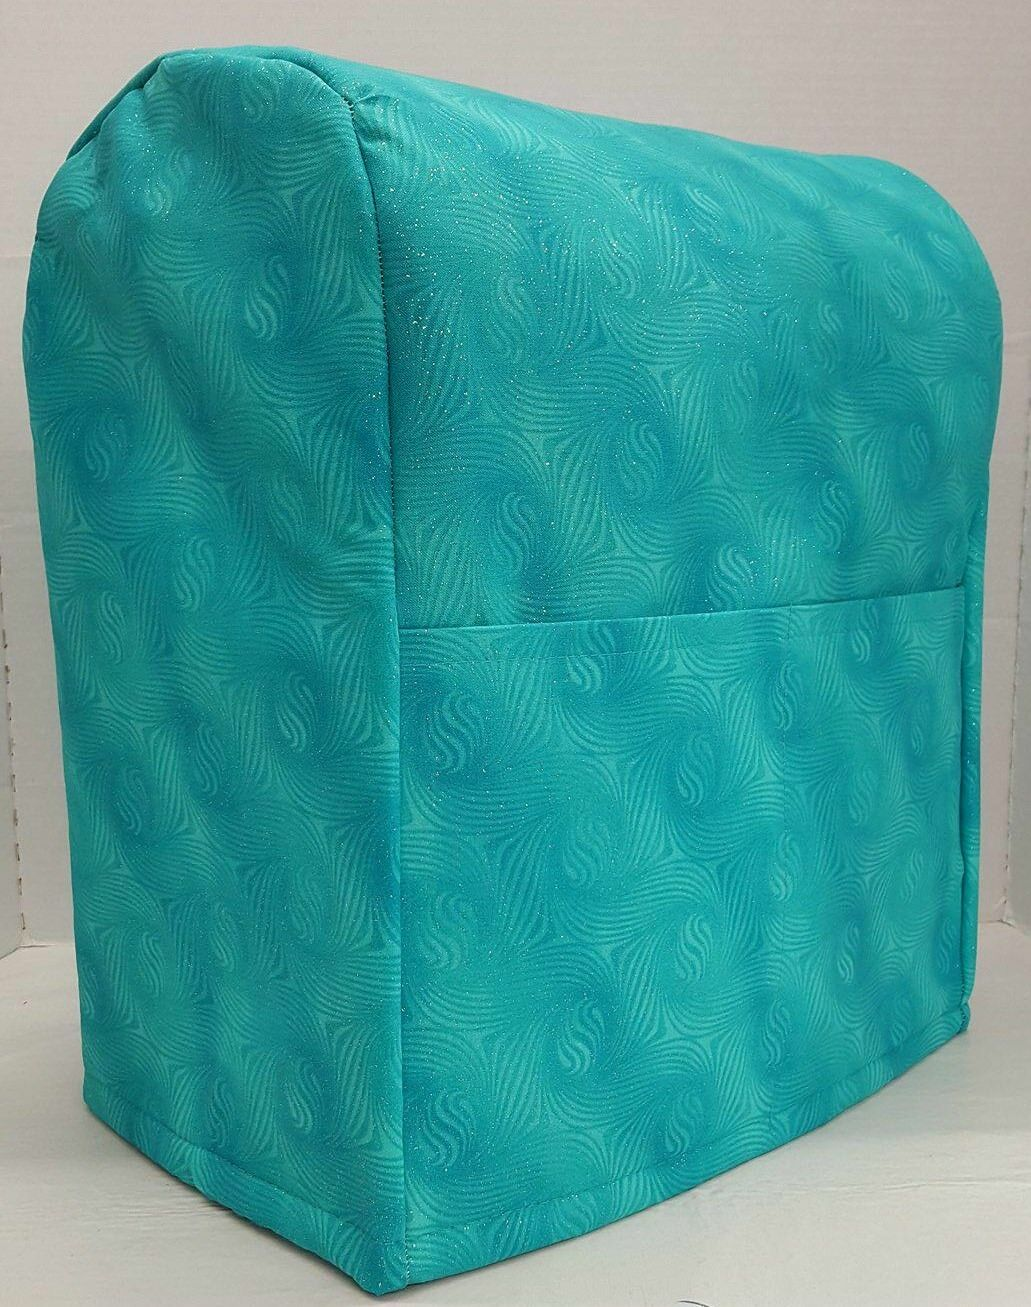 Teal Sparkle Cover Compatible With Kitchenaid Stand Mixer By Penny S Needful Things All Lift Bowl Models Walmart Com Walmart Com